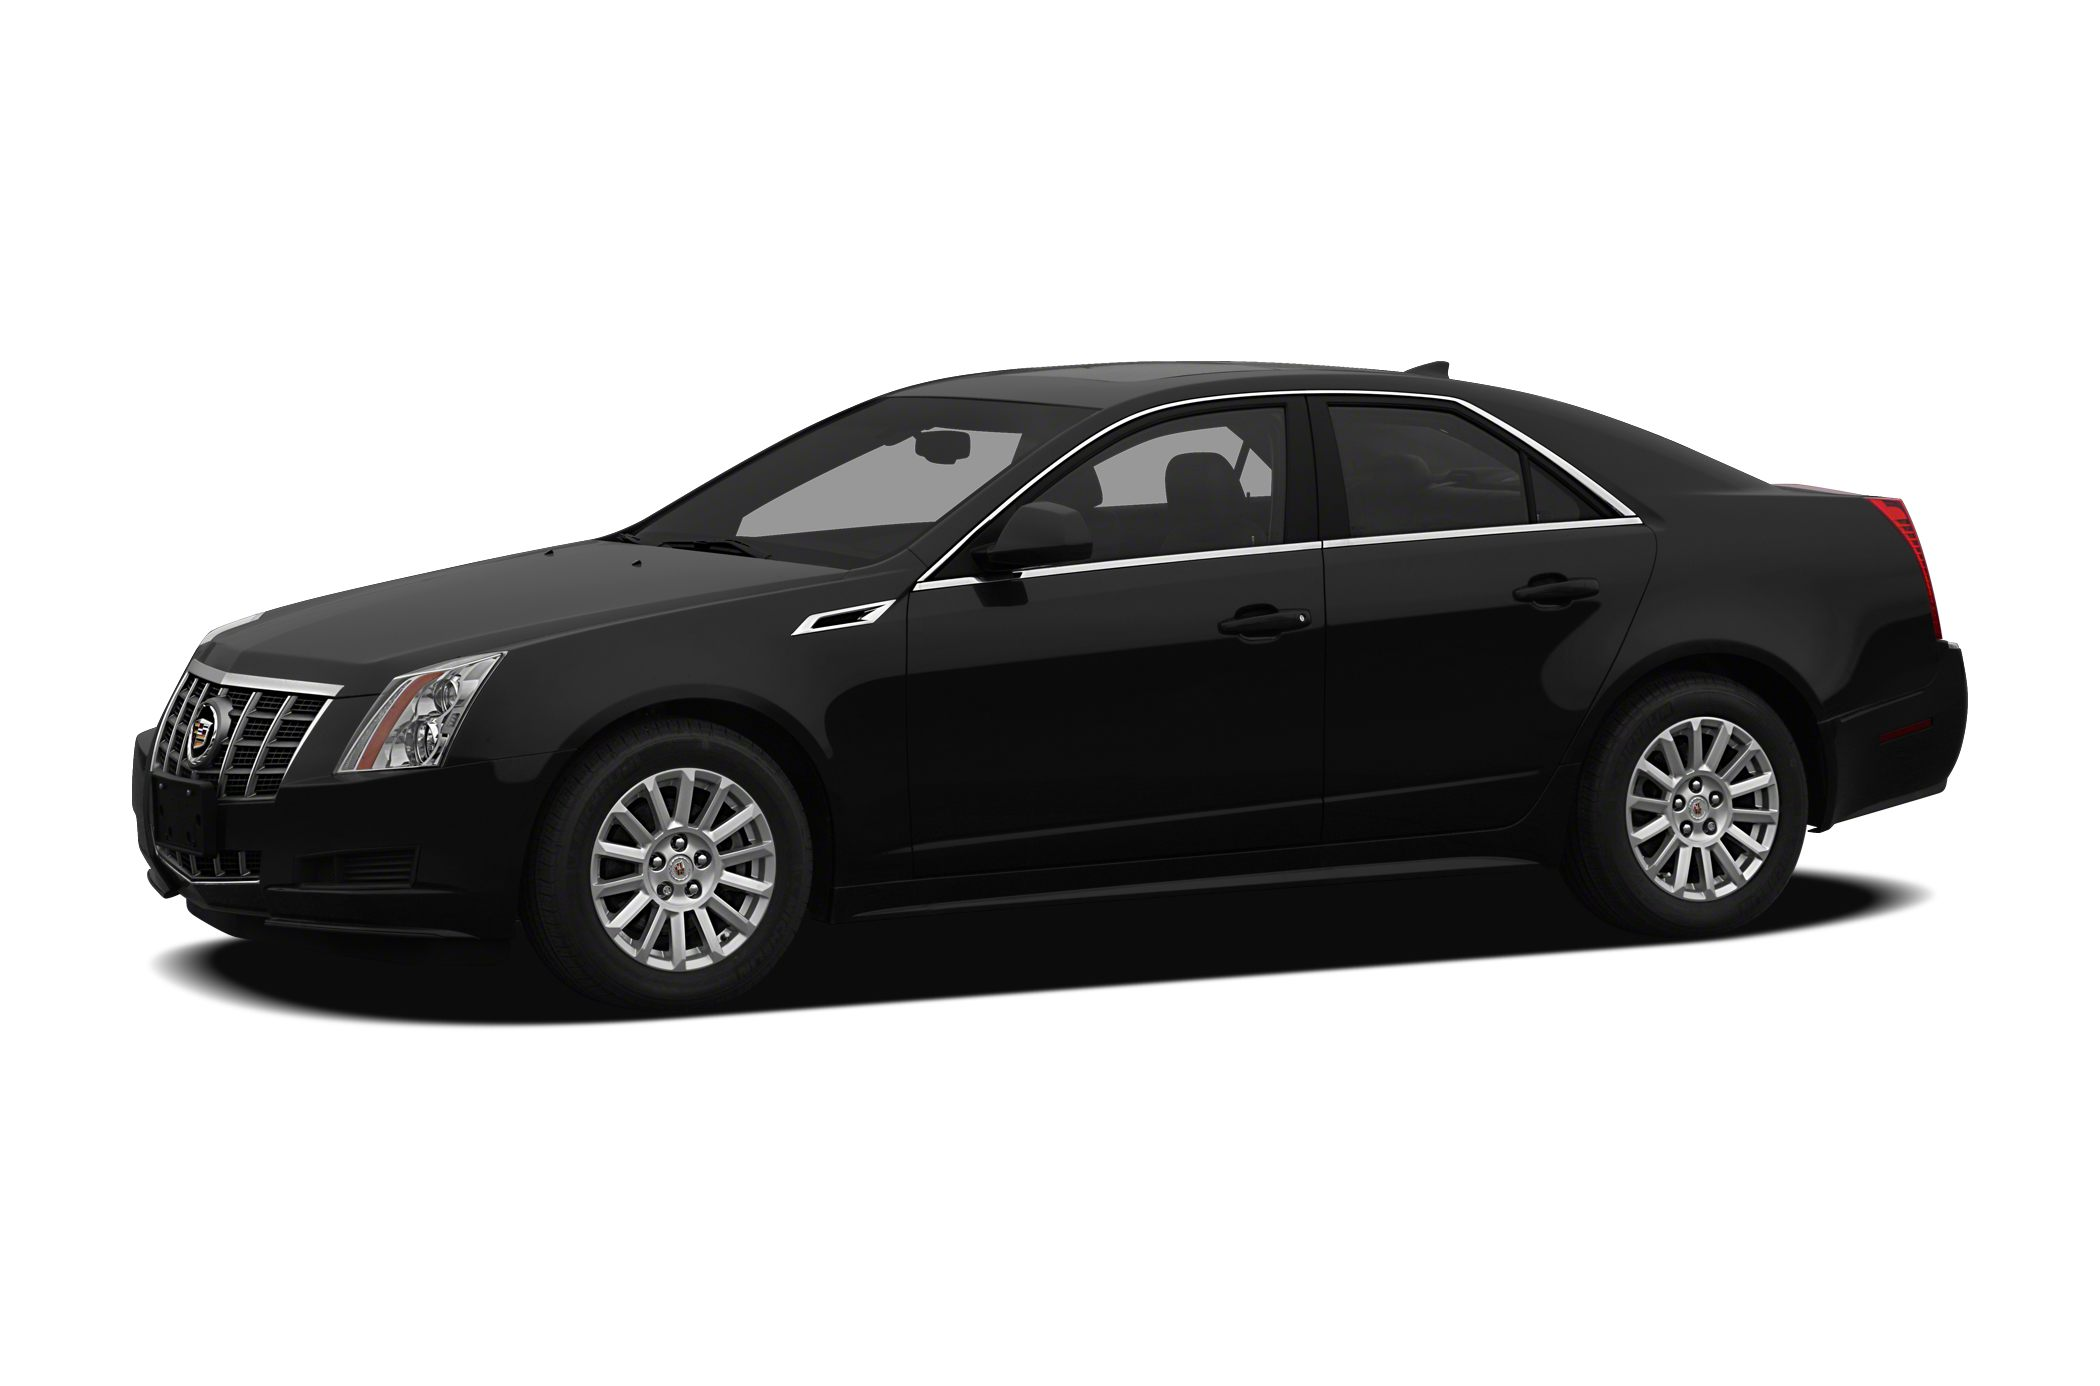 2012 Cadillac CTS Luxury Sedan for sale in Houston for $26,982 with 17,402 miles